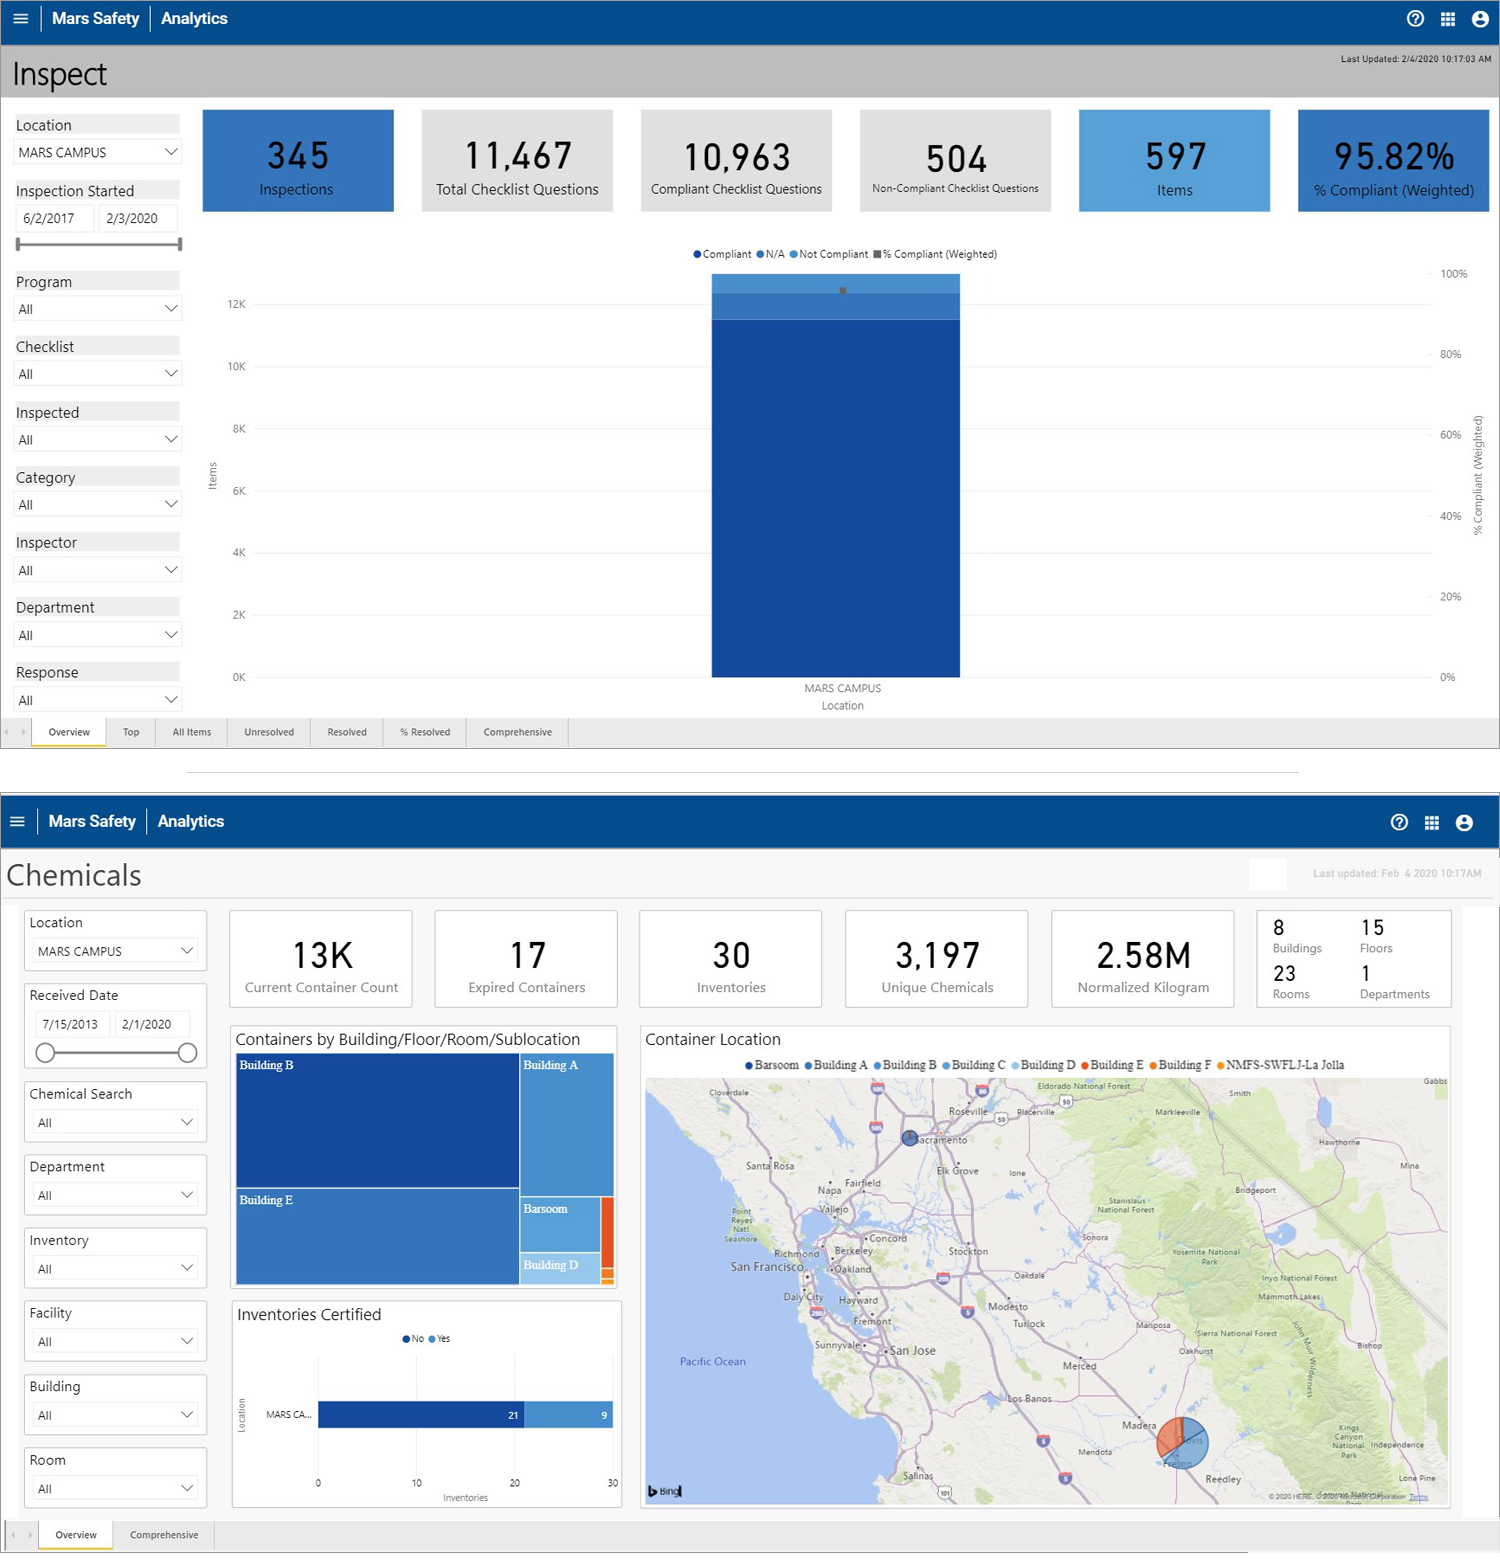 Analytics available for inspection reports, chemical inventories, and more.